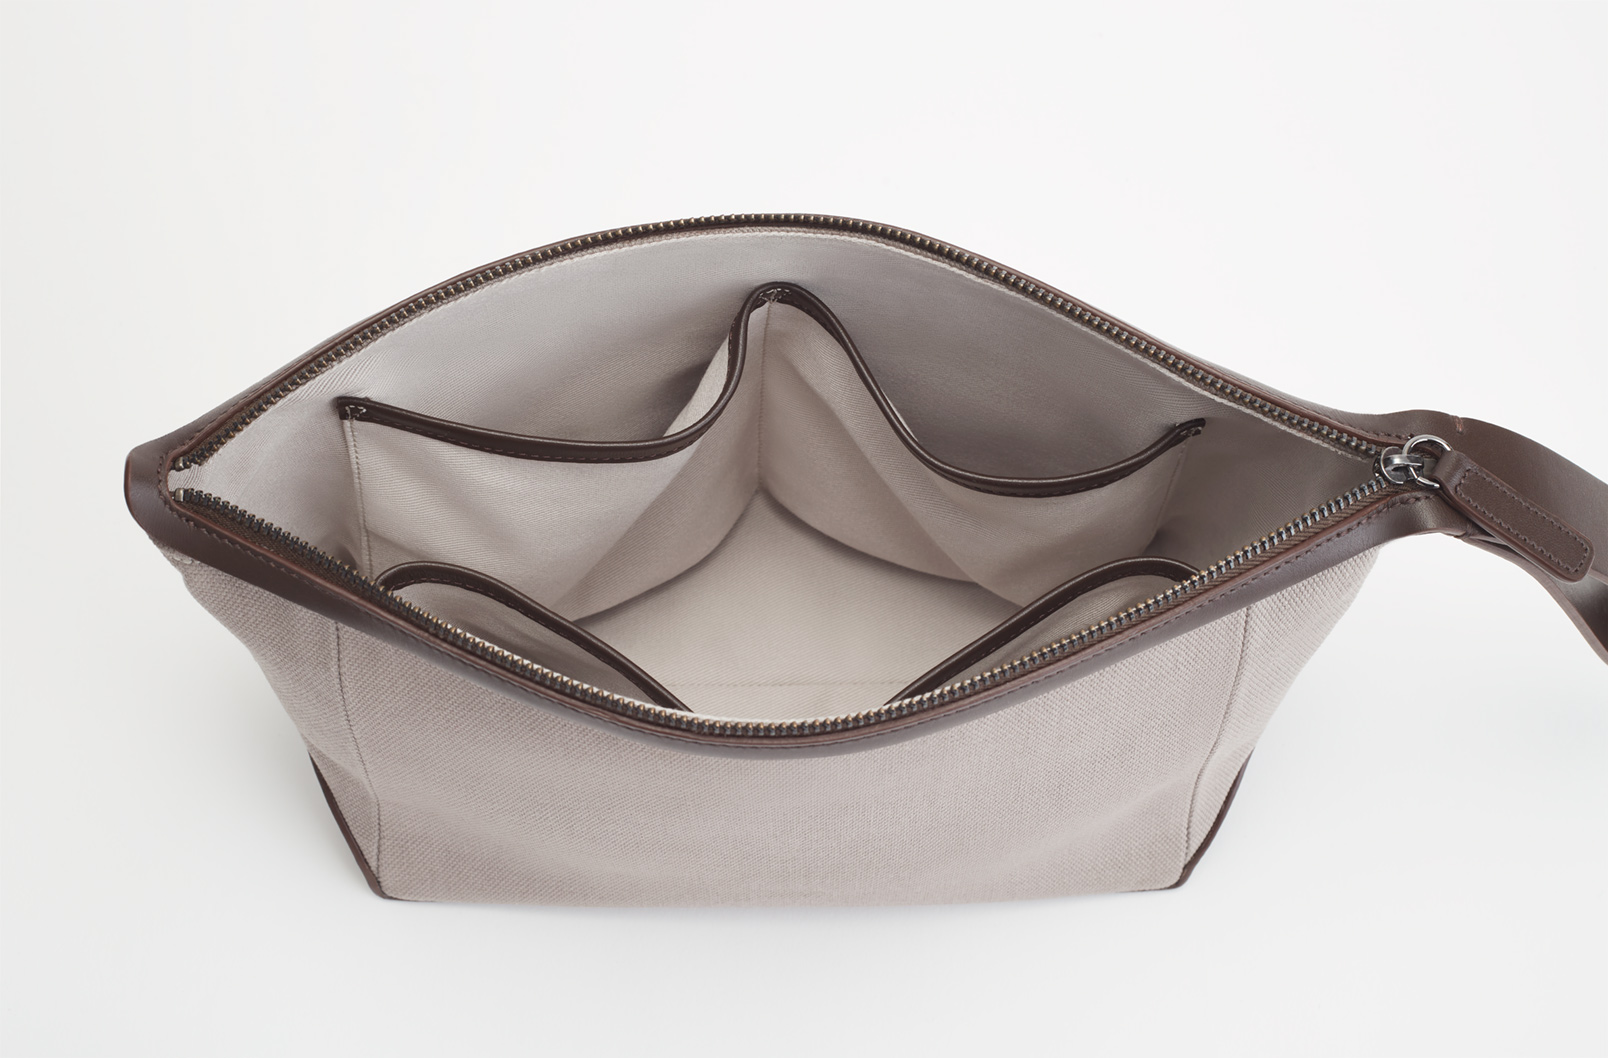 Interior details of Men's Travel Zipper Pouch